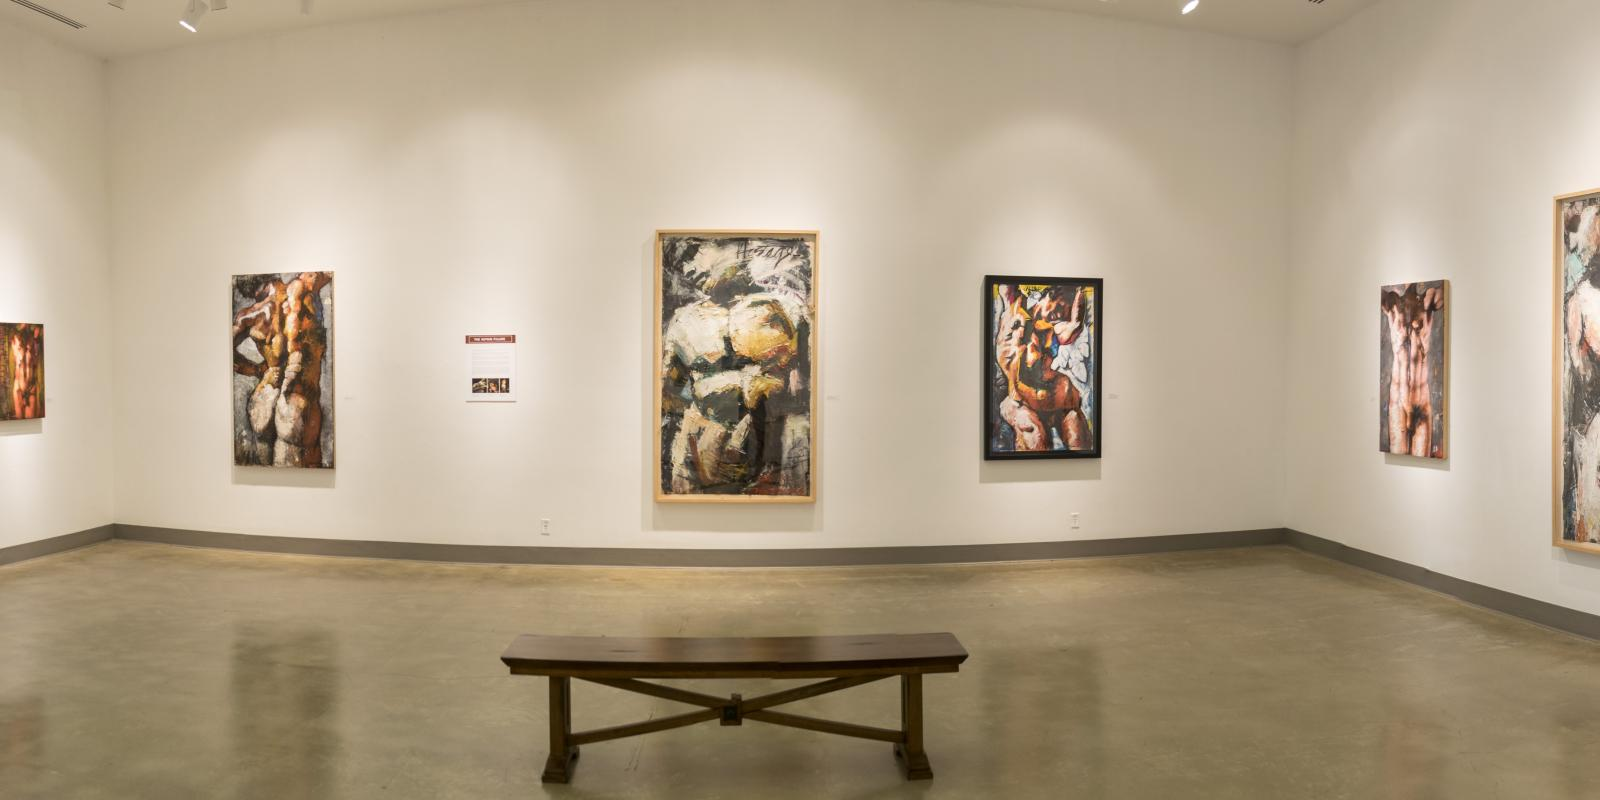 Eastside of front gallery, Exhibition: Jim Morphesis: Passion and Presence, Memento and Myth, Nov 18, 2017 - Feb 1, 2018, Curator: Michele Cairella Fillmore, W. Keith & Janet Kellogg Art Gallery, Cal Poly Pomona. [Panoramic of the South gallery]